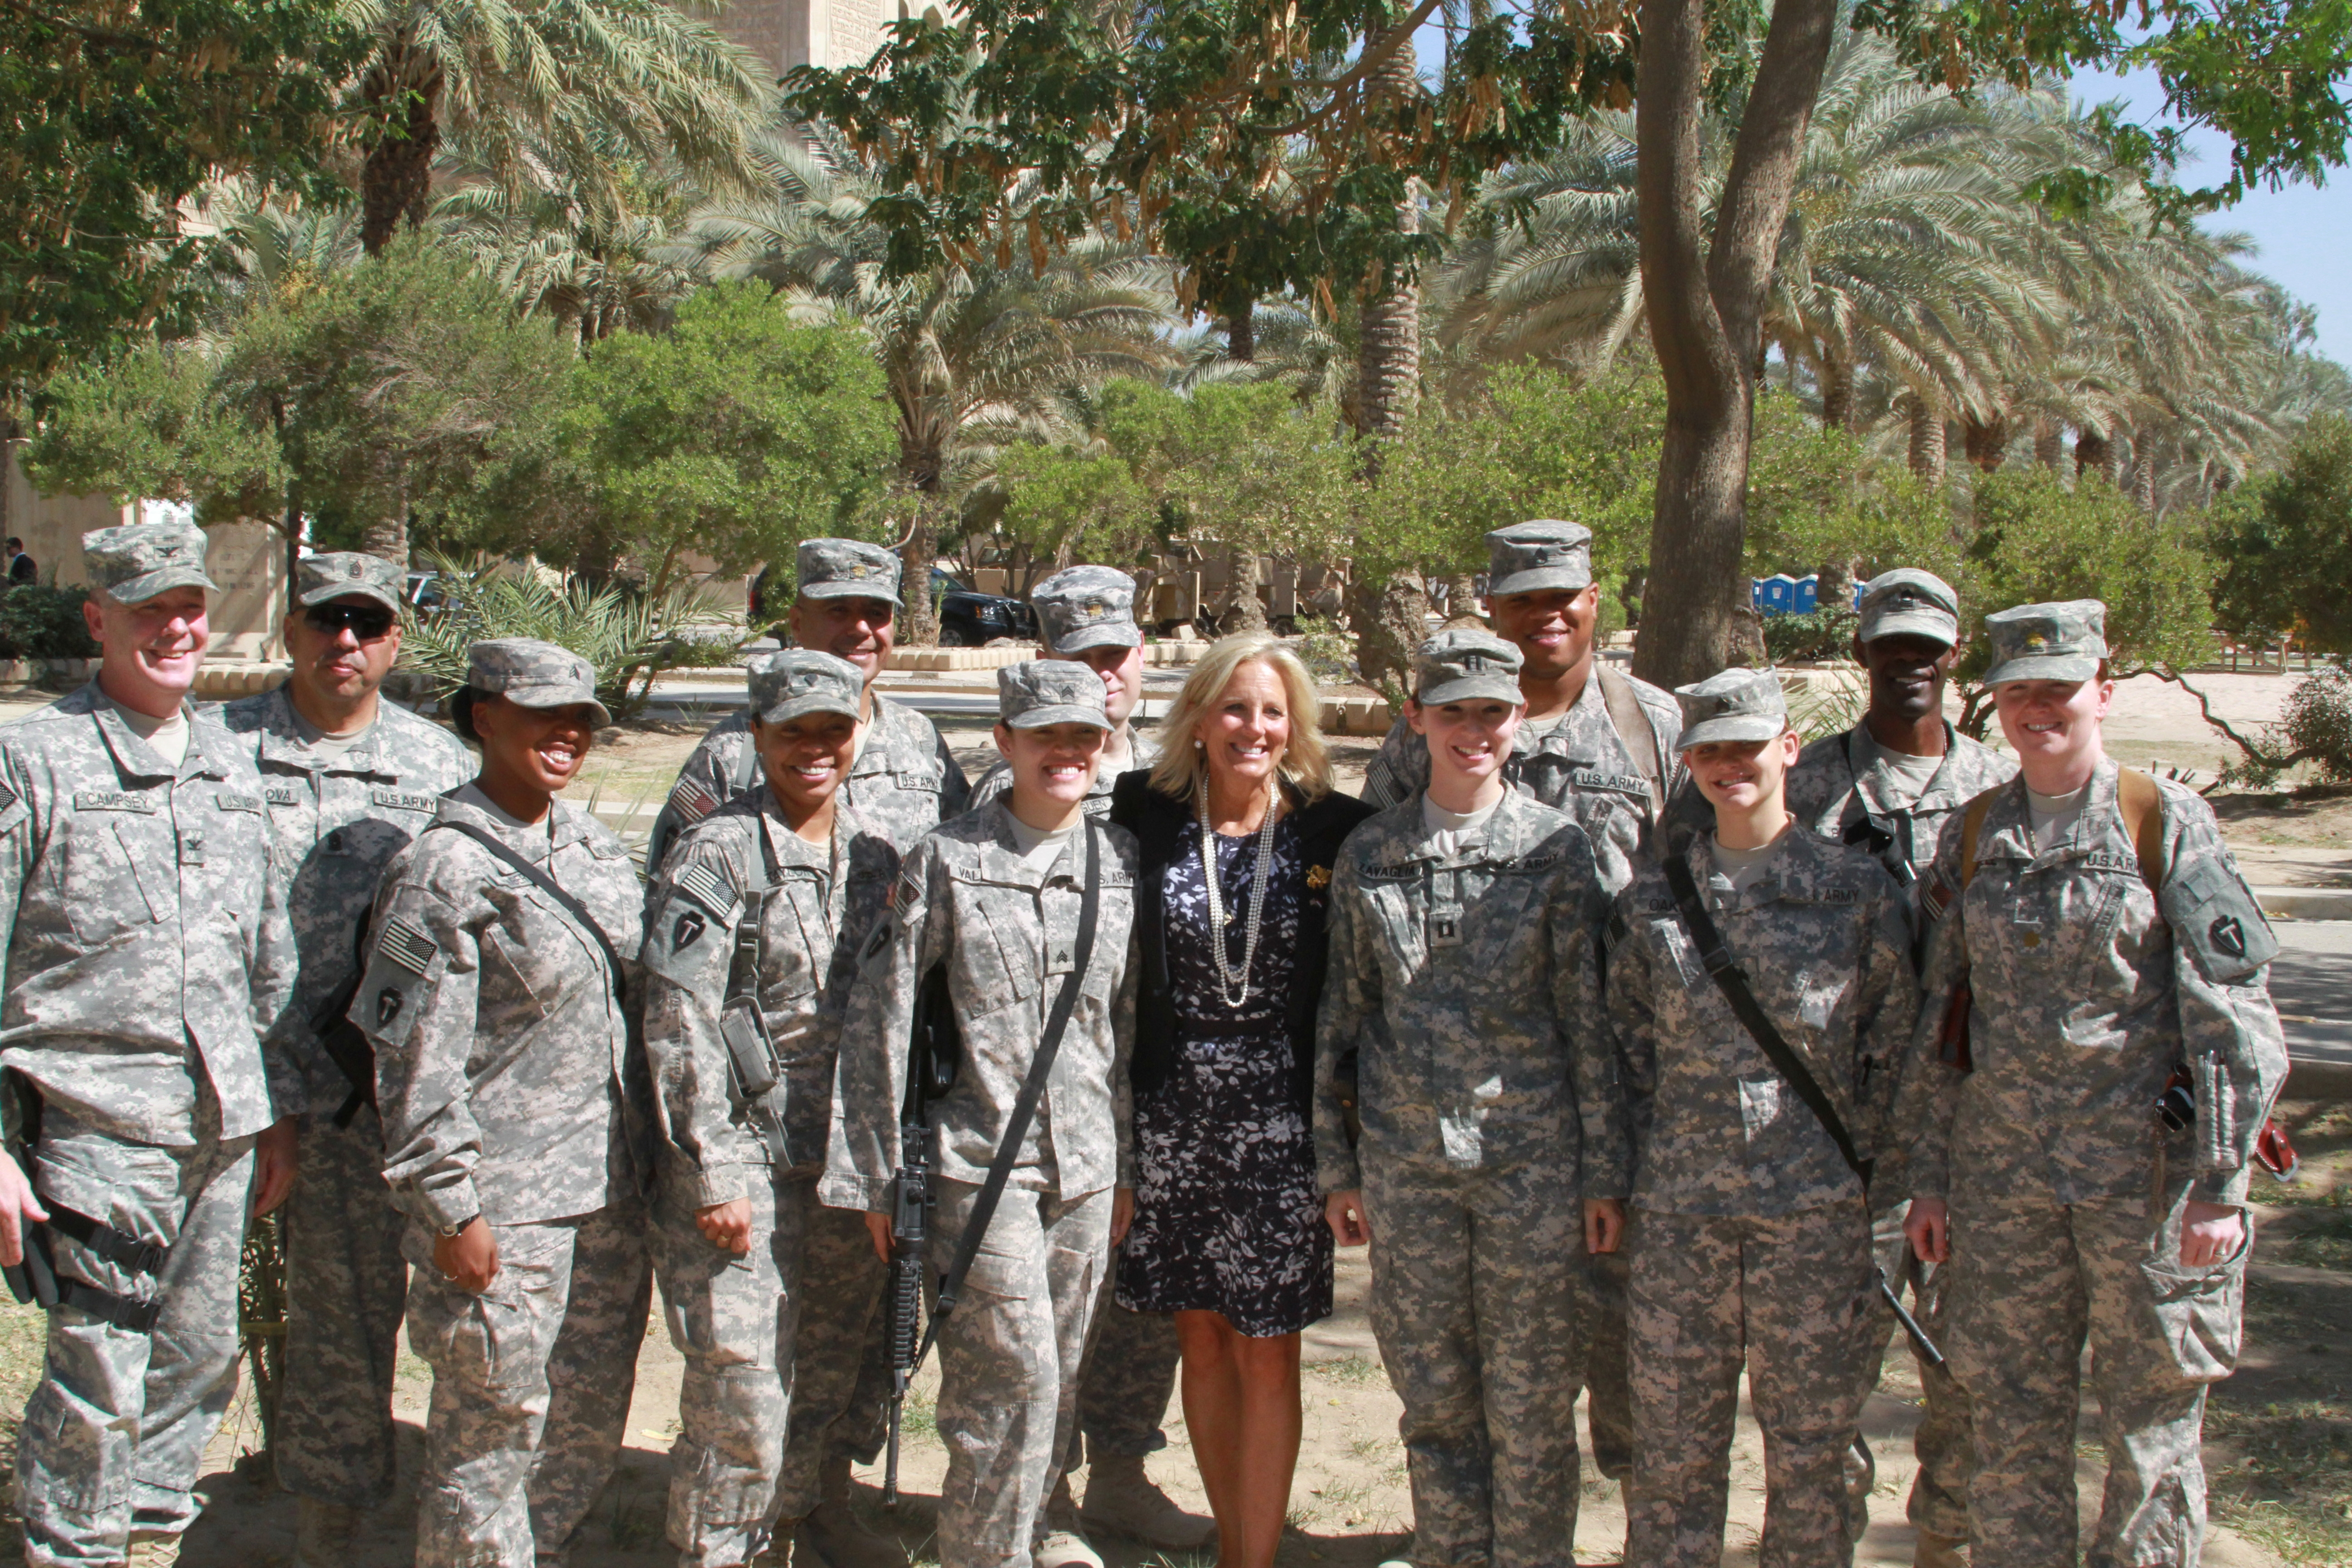 Dr. Jill Biden meets with servicemen and women